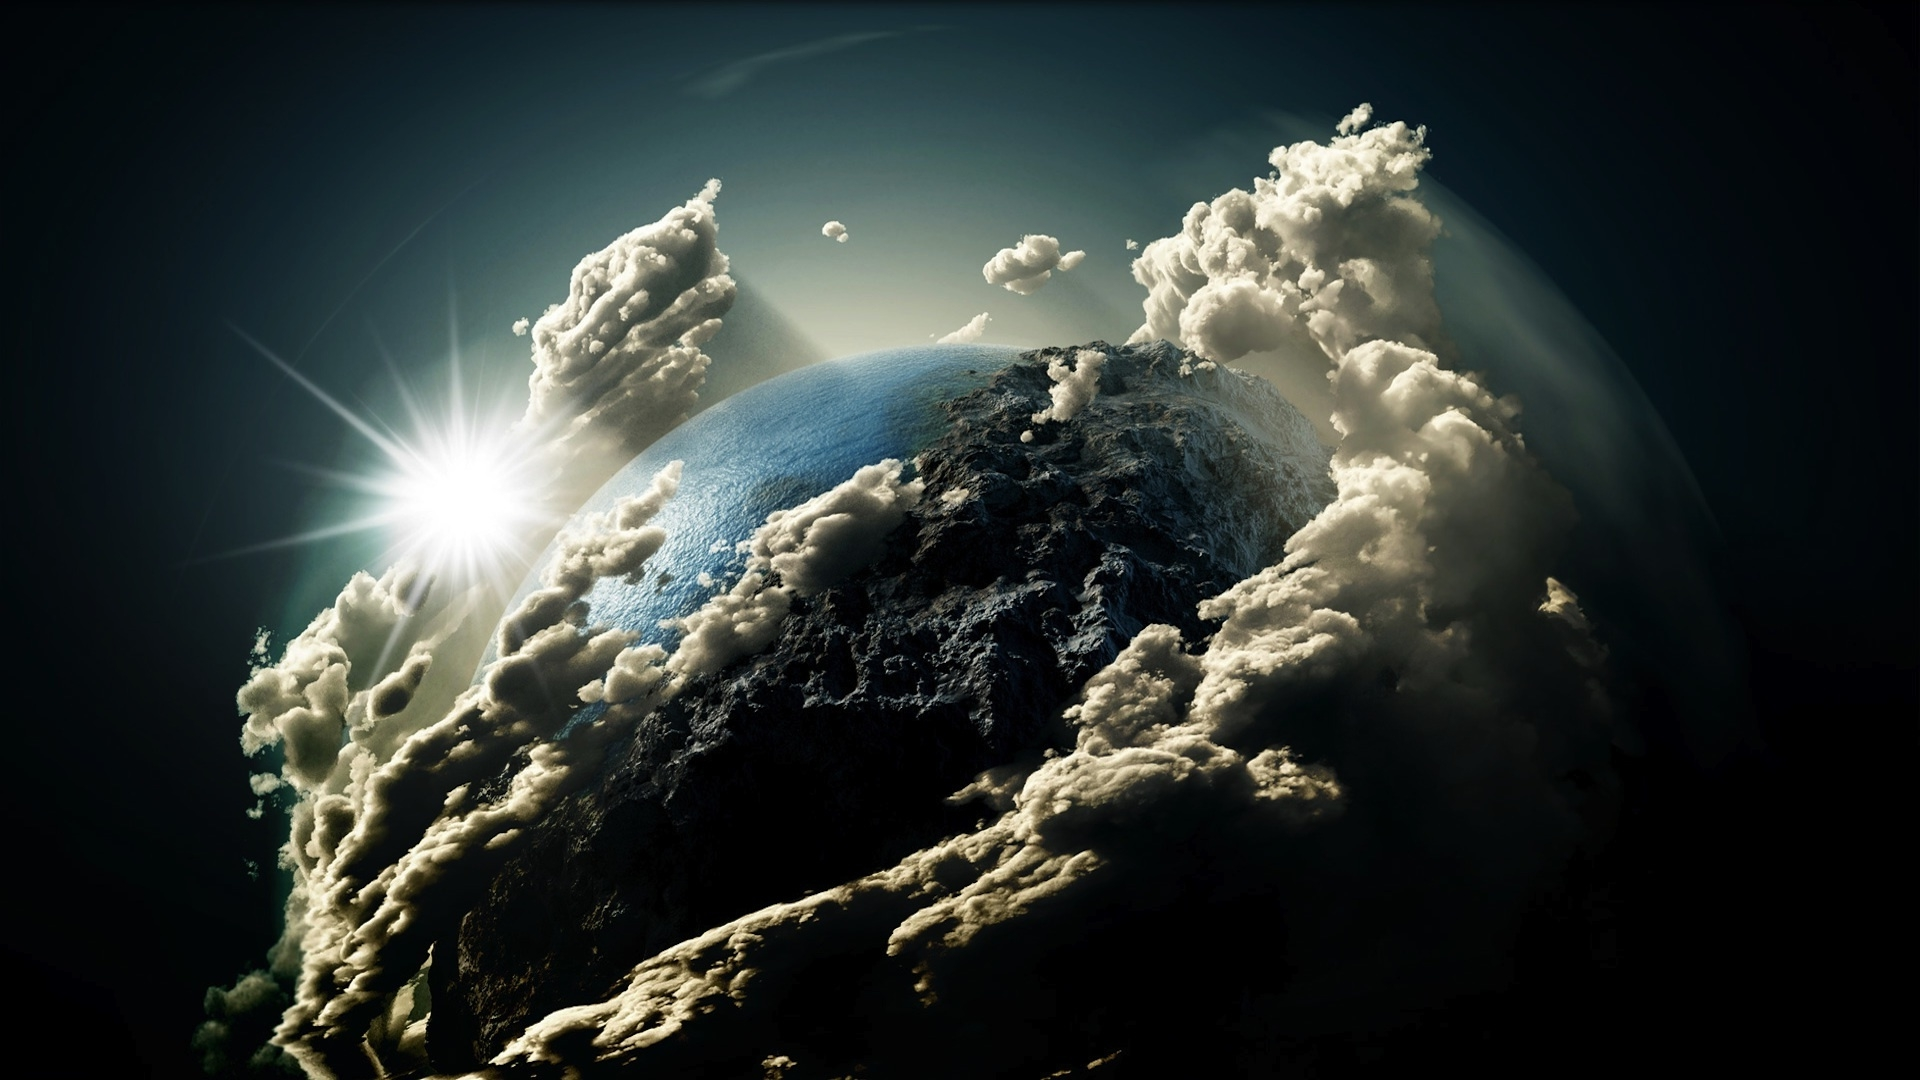 Fantasy earth clouds free hd wallpapers media file pixelstalk view image larger and download voltagebd Images